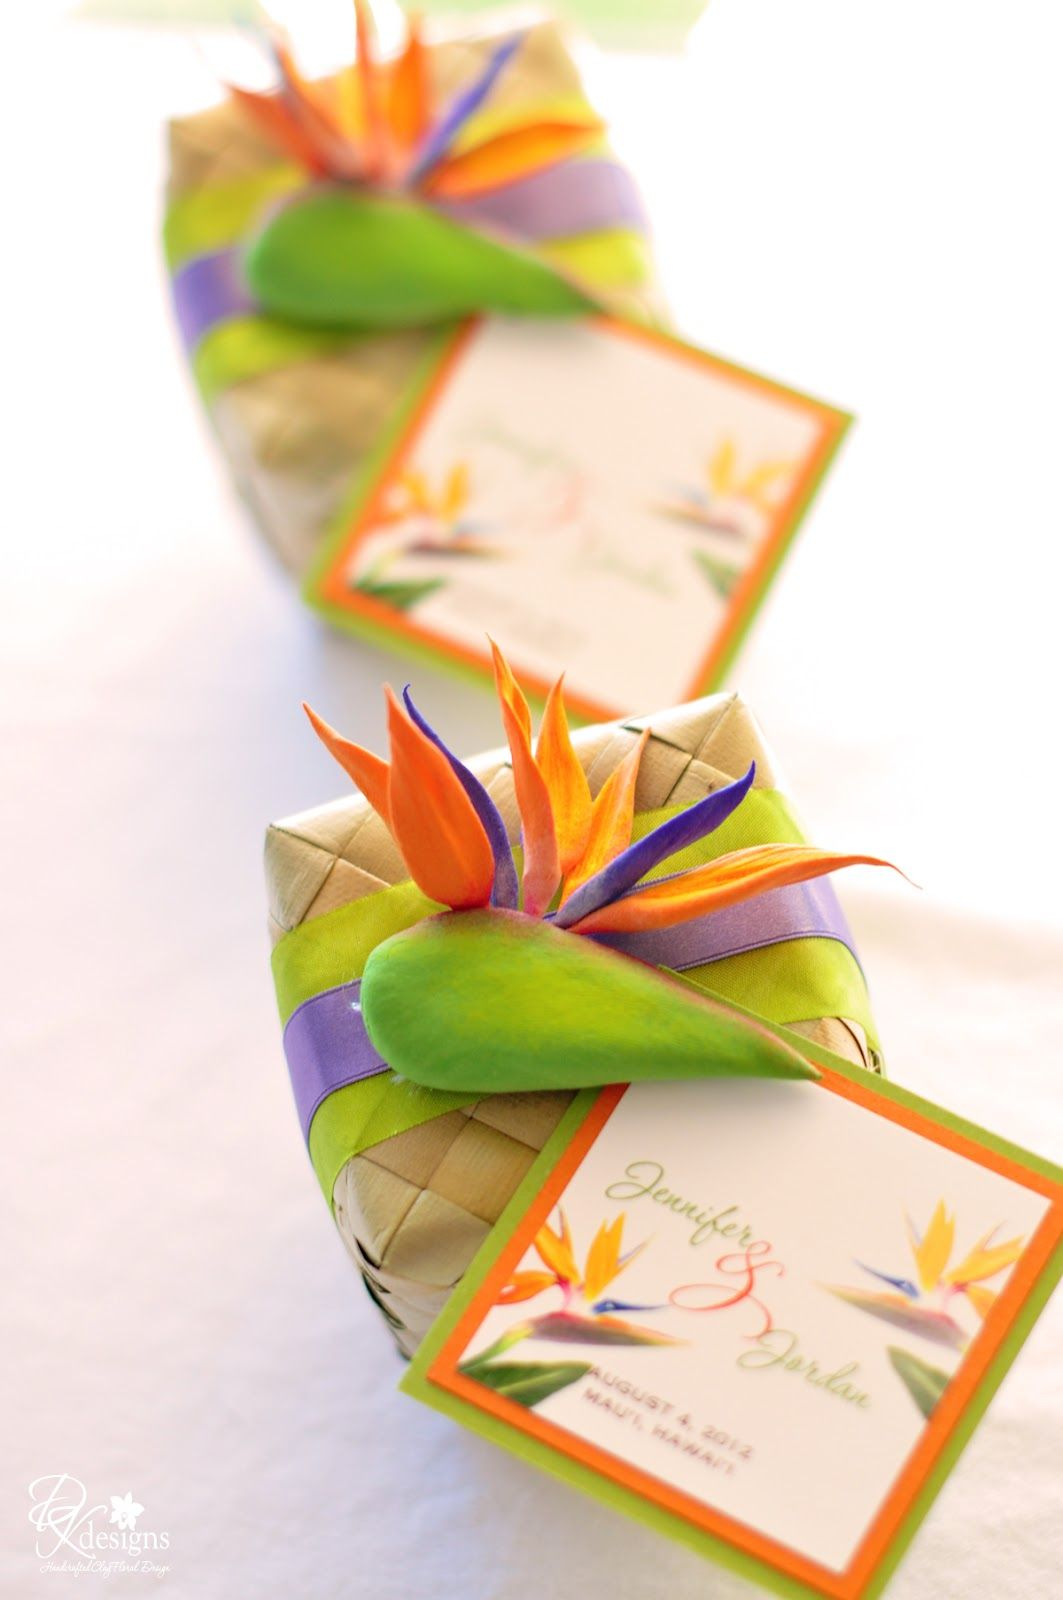 bird of paradise invitations | DK Designs: Bird of Paradise Themed ...